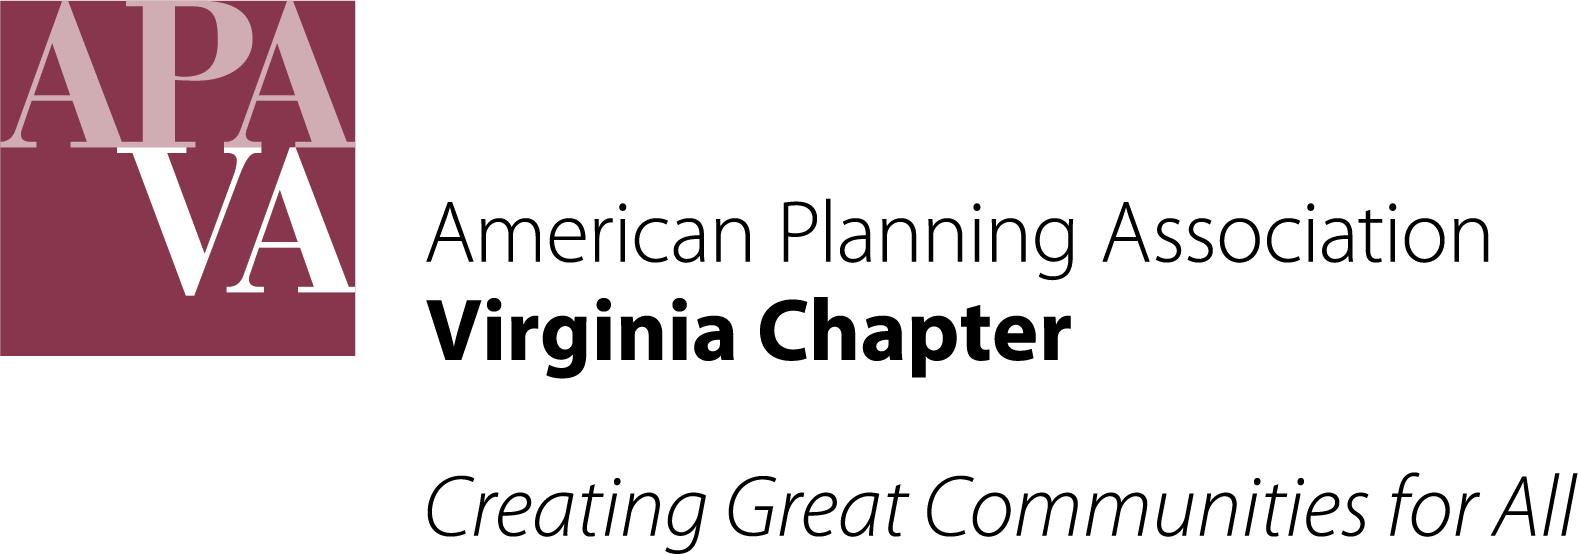 Chapter/Division Signature